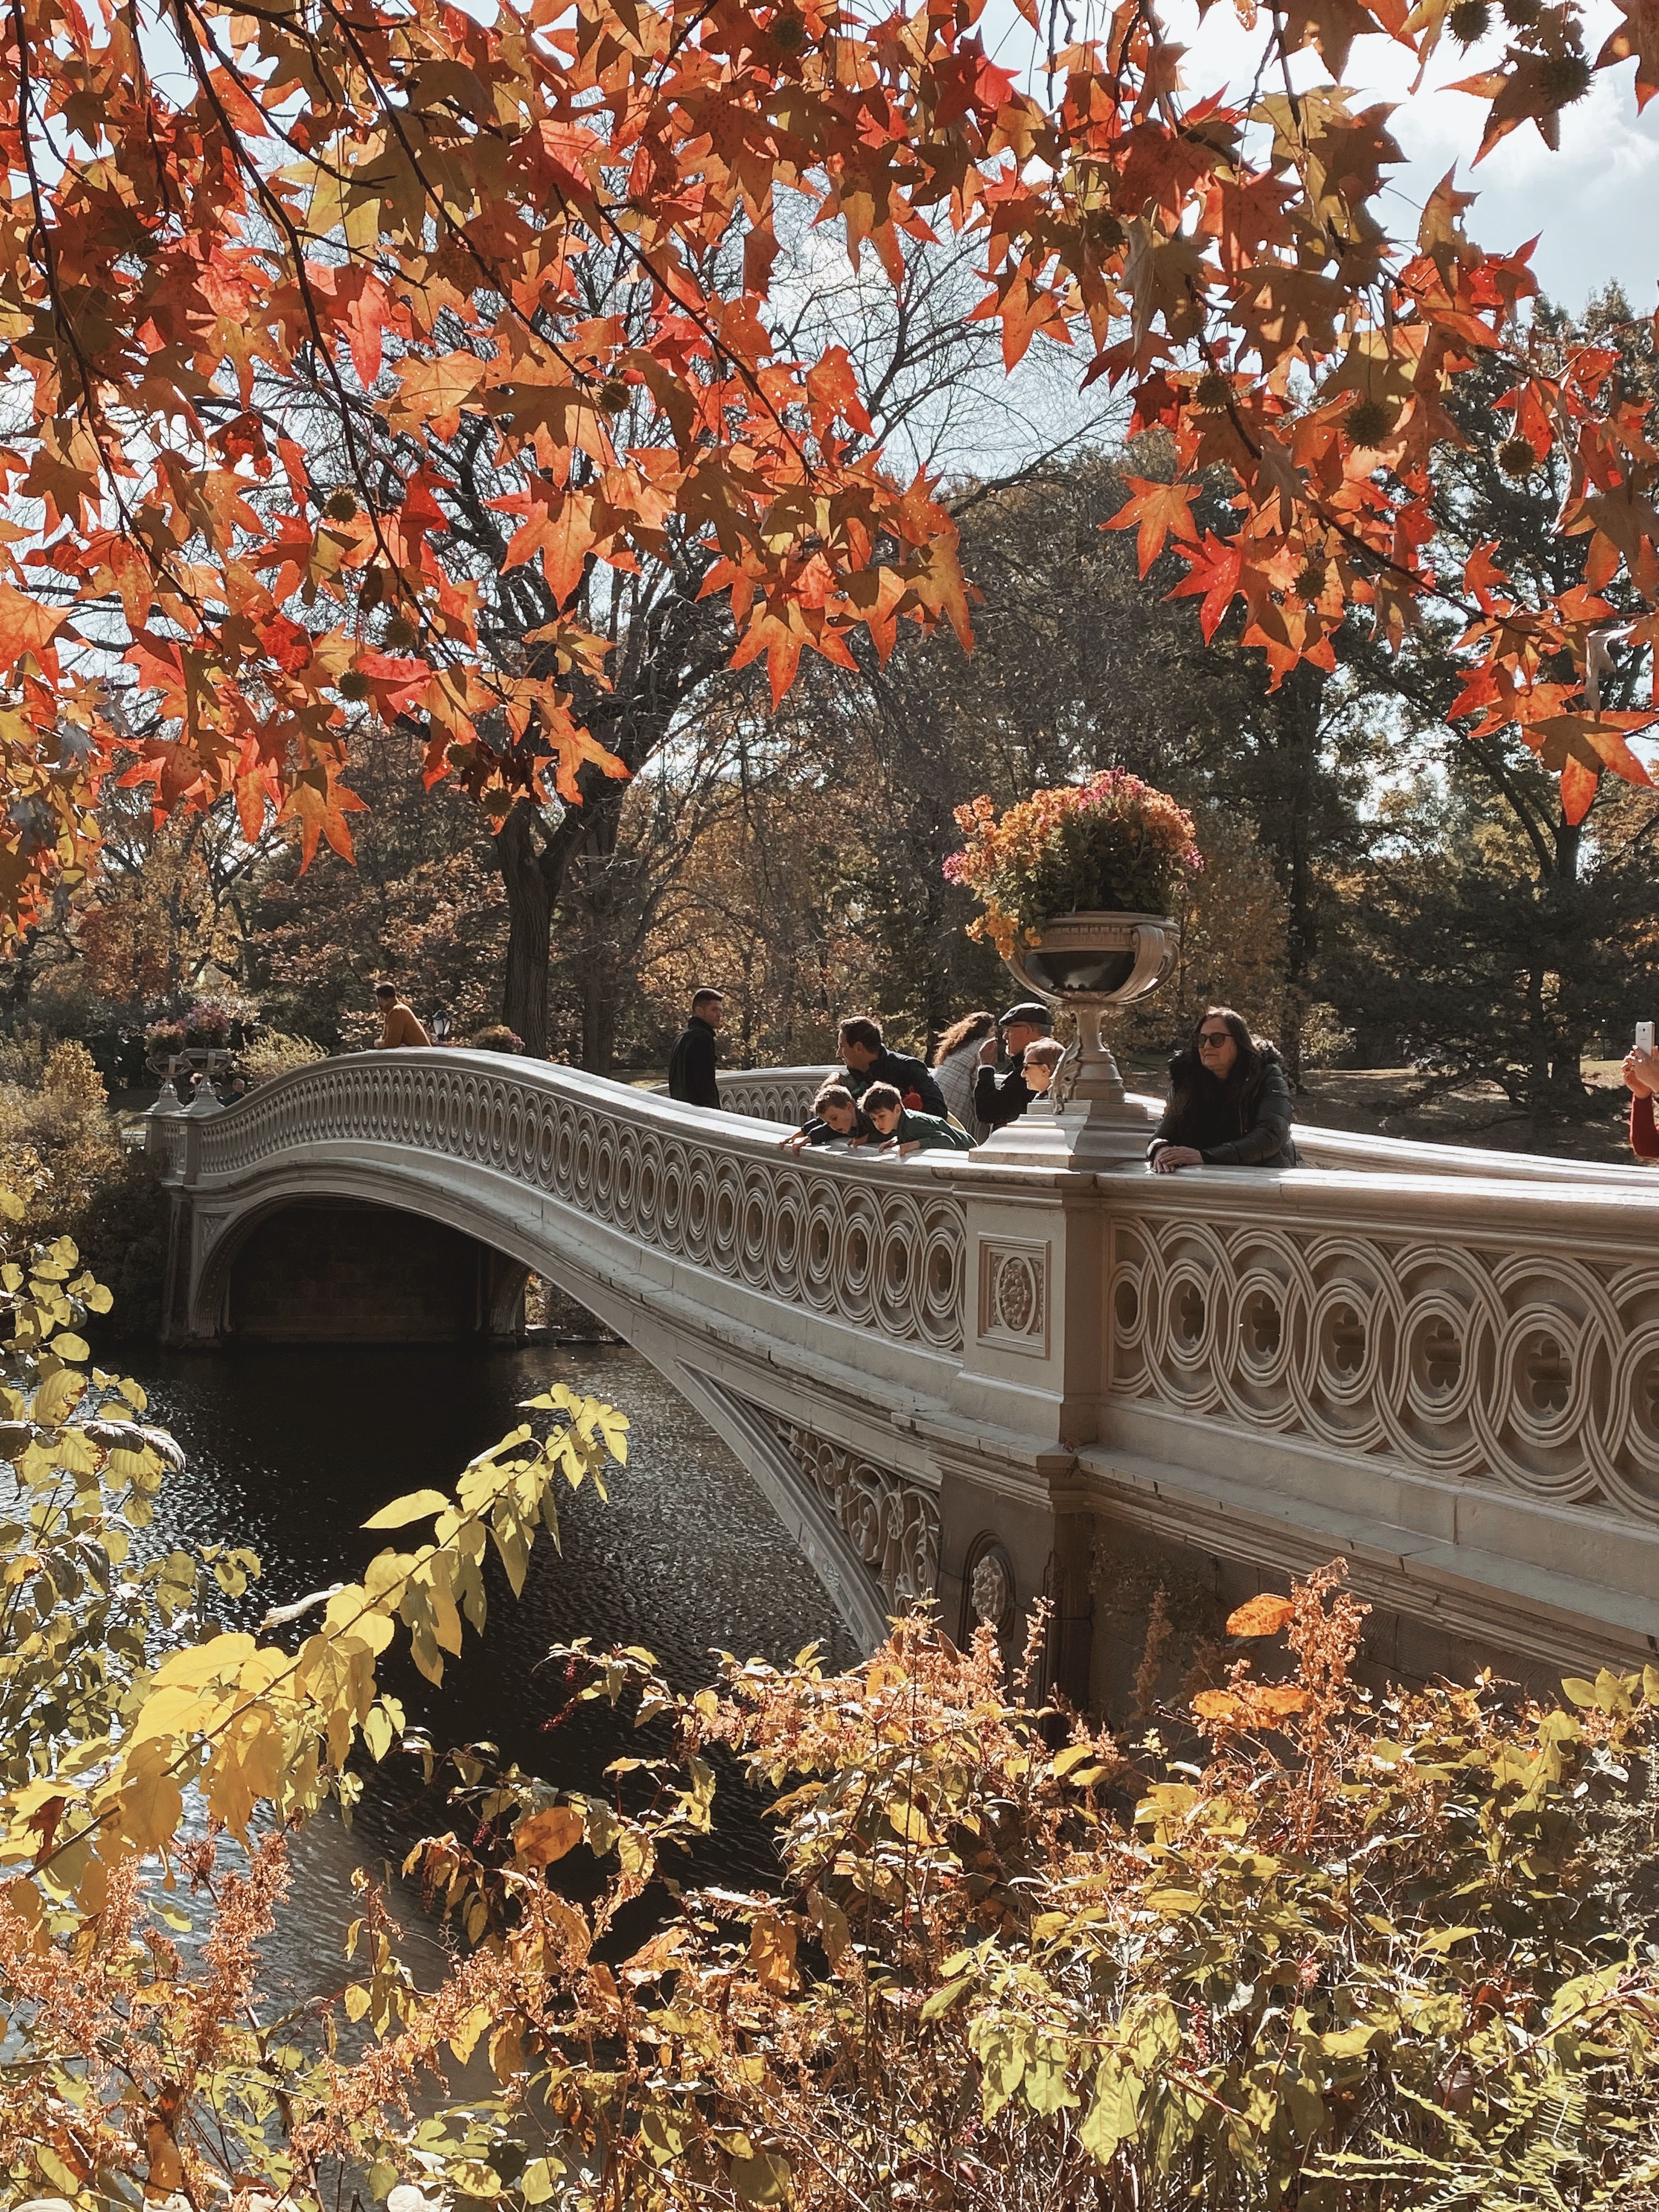 2020 Halloween Nyc Bridges The beauty in it all! in 2020 | Halloween in new york, Autumn in